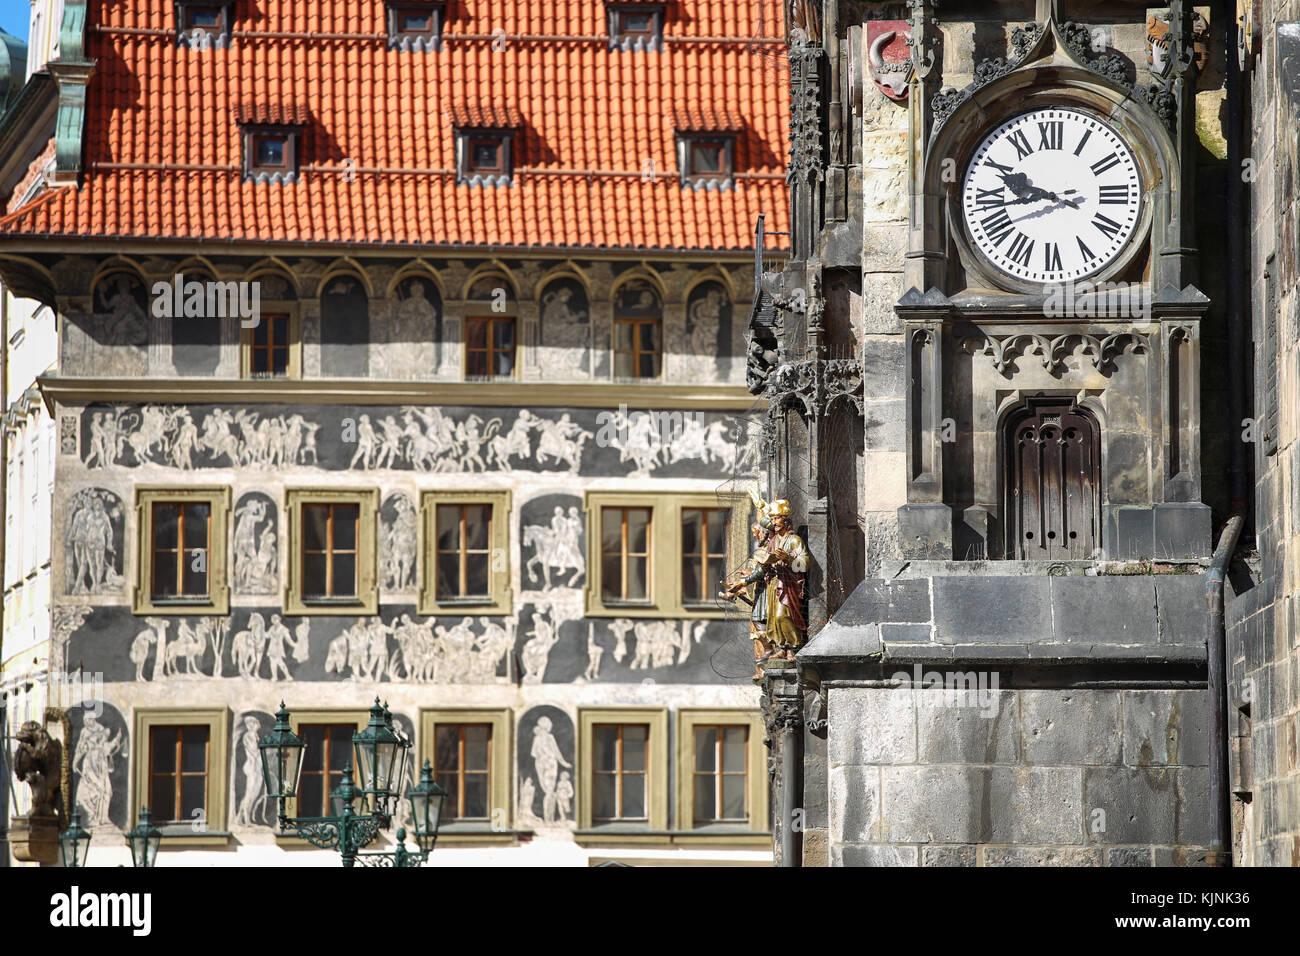 The Prague old City Hall and Astronomical clock Orloj at Old Town Square in Prague, Czech Republic - Stock Image